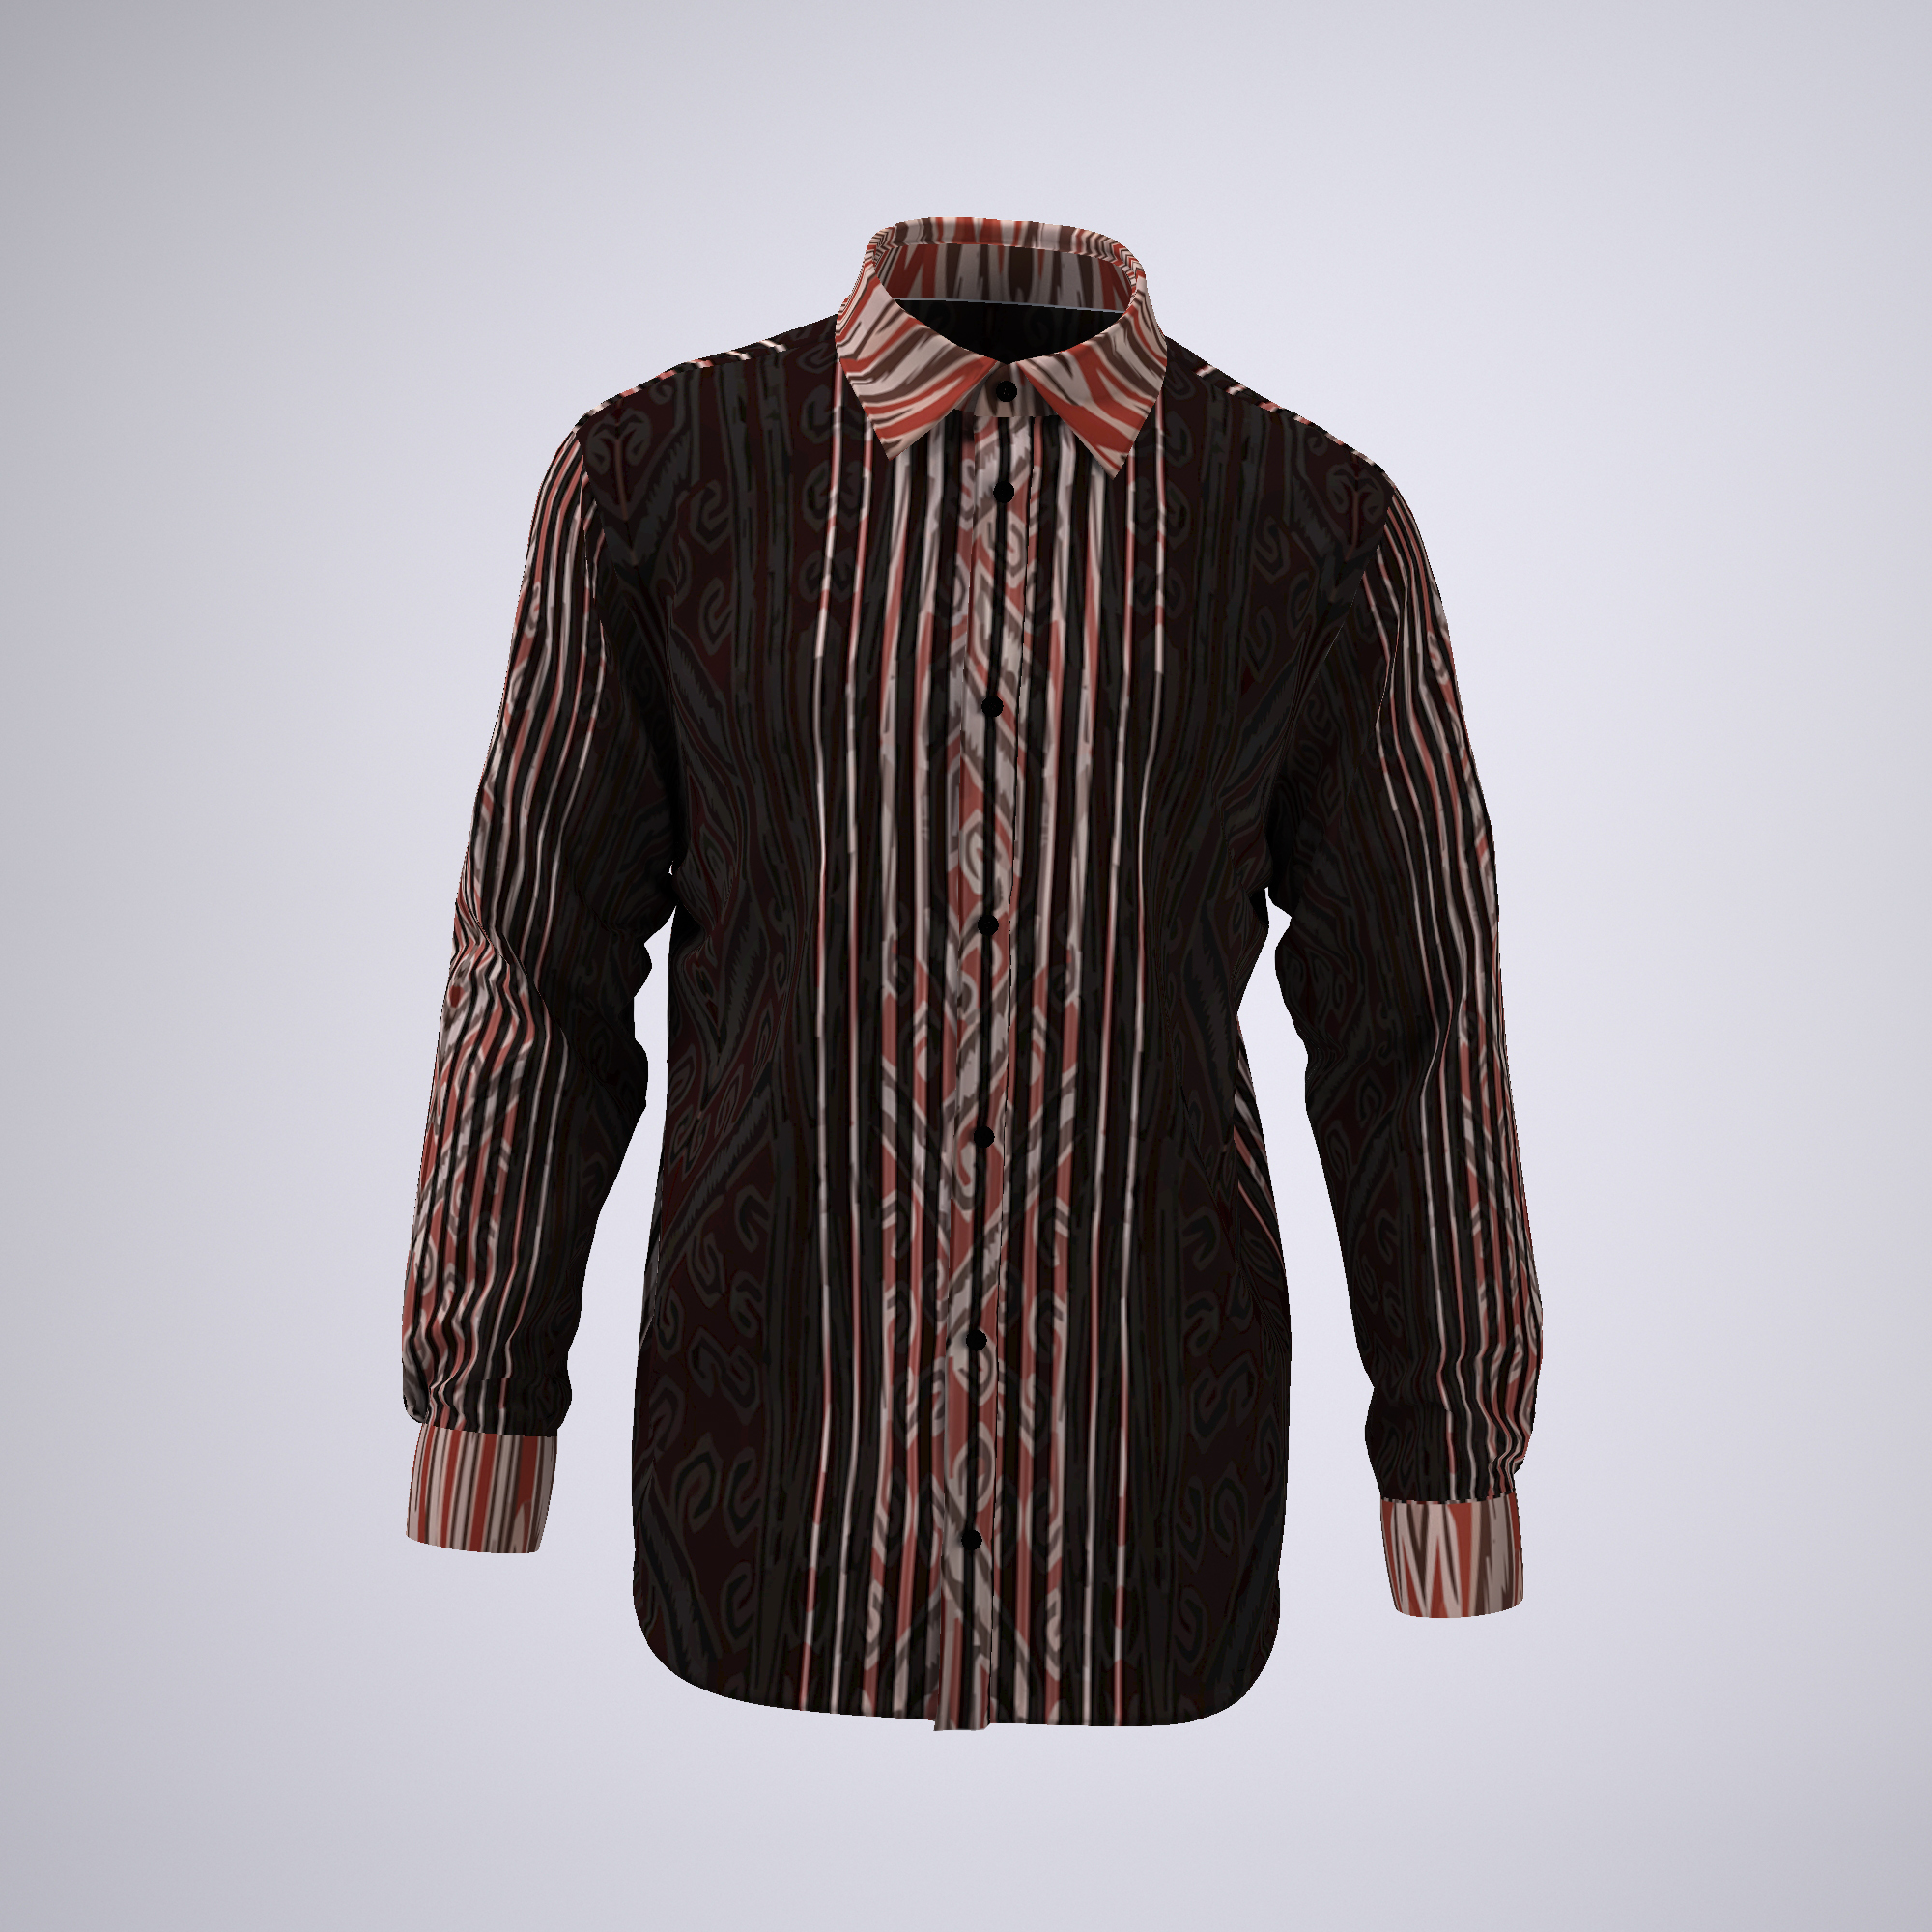 BSB Lined LS Shirt.jpg